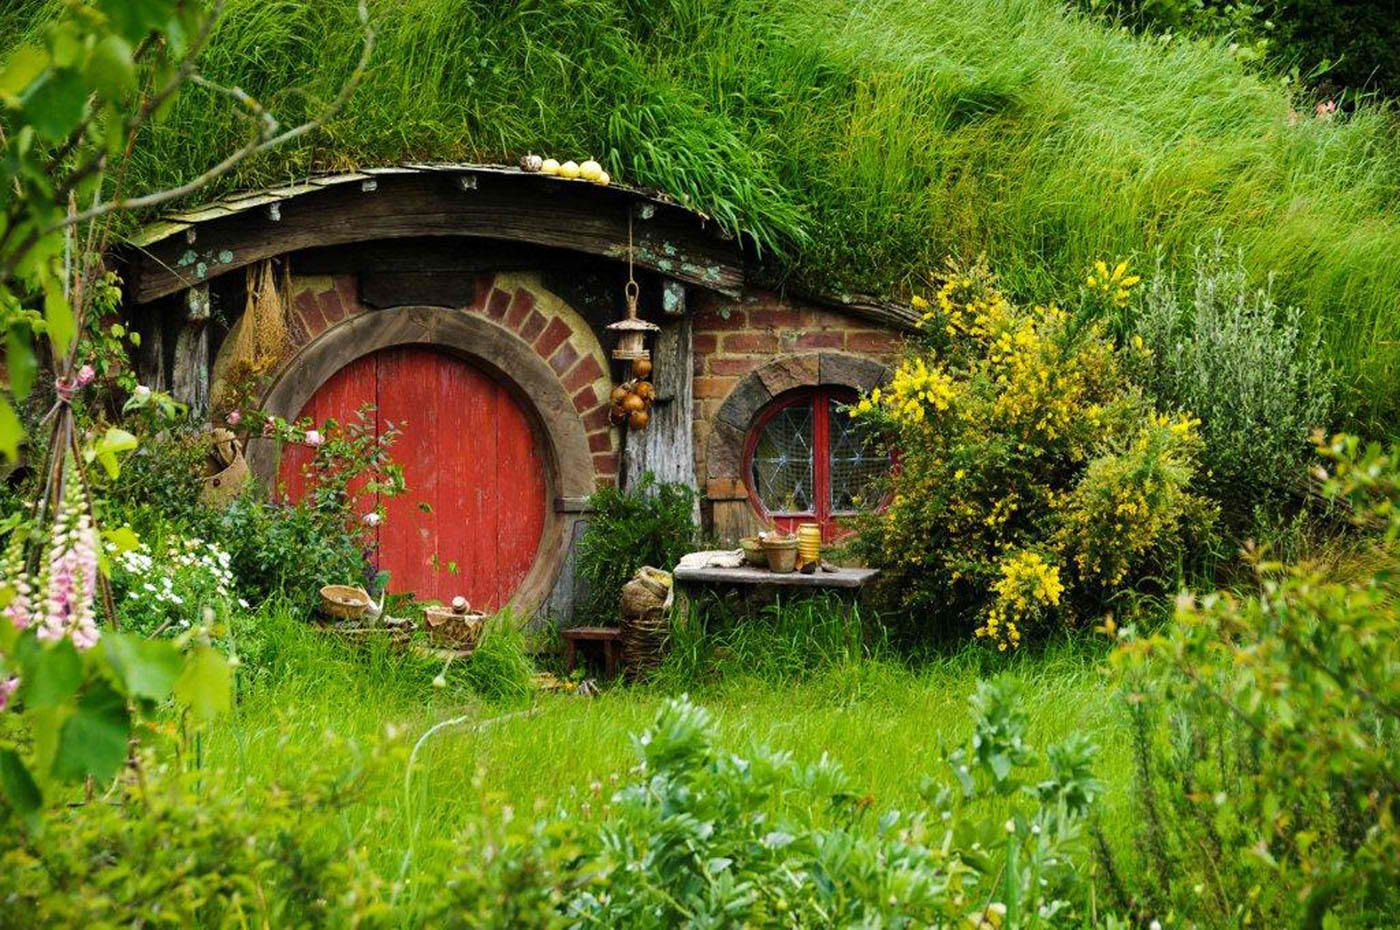 Hobbit Homes crystal's exclusive dinner at the hobbiton movie set in new